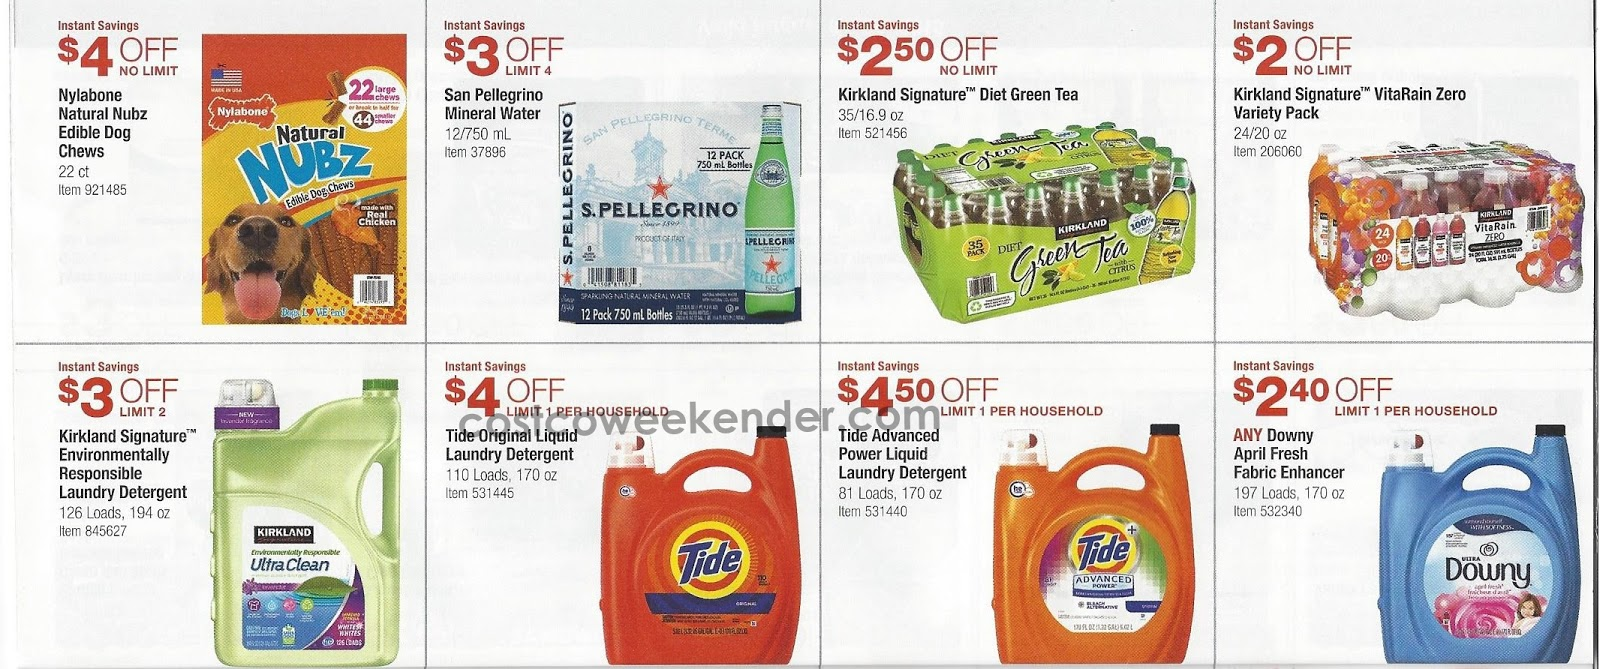 Current Costco Coupon Book August 2015 Costco Weekender